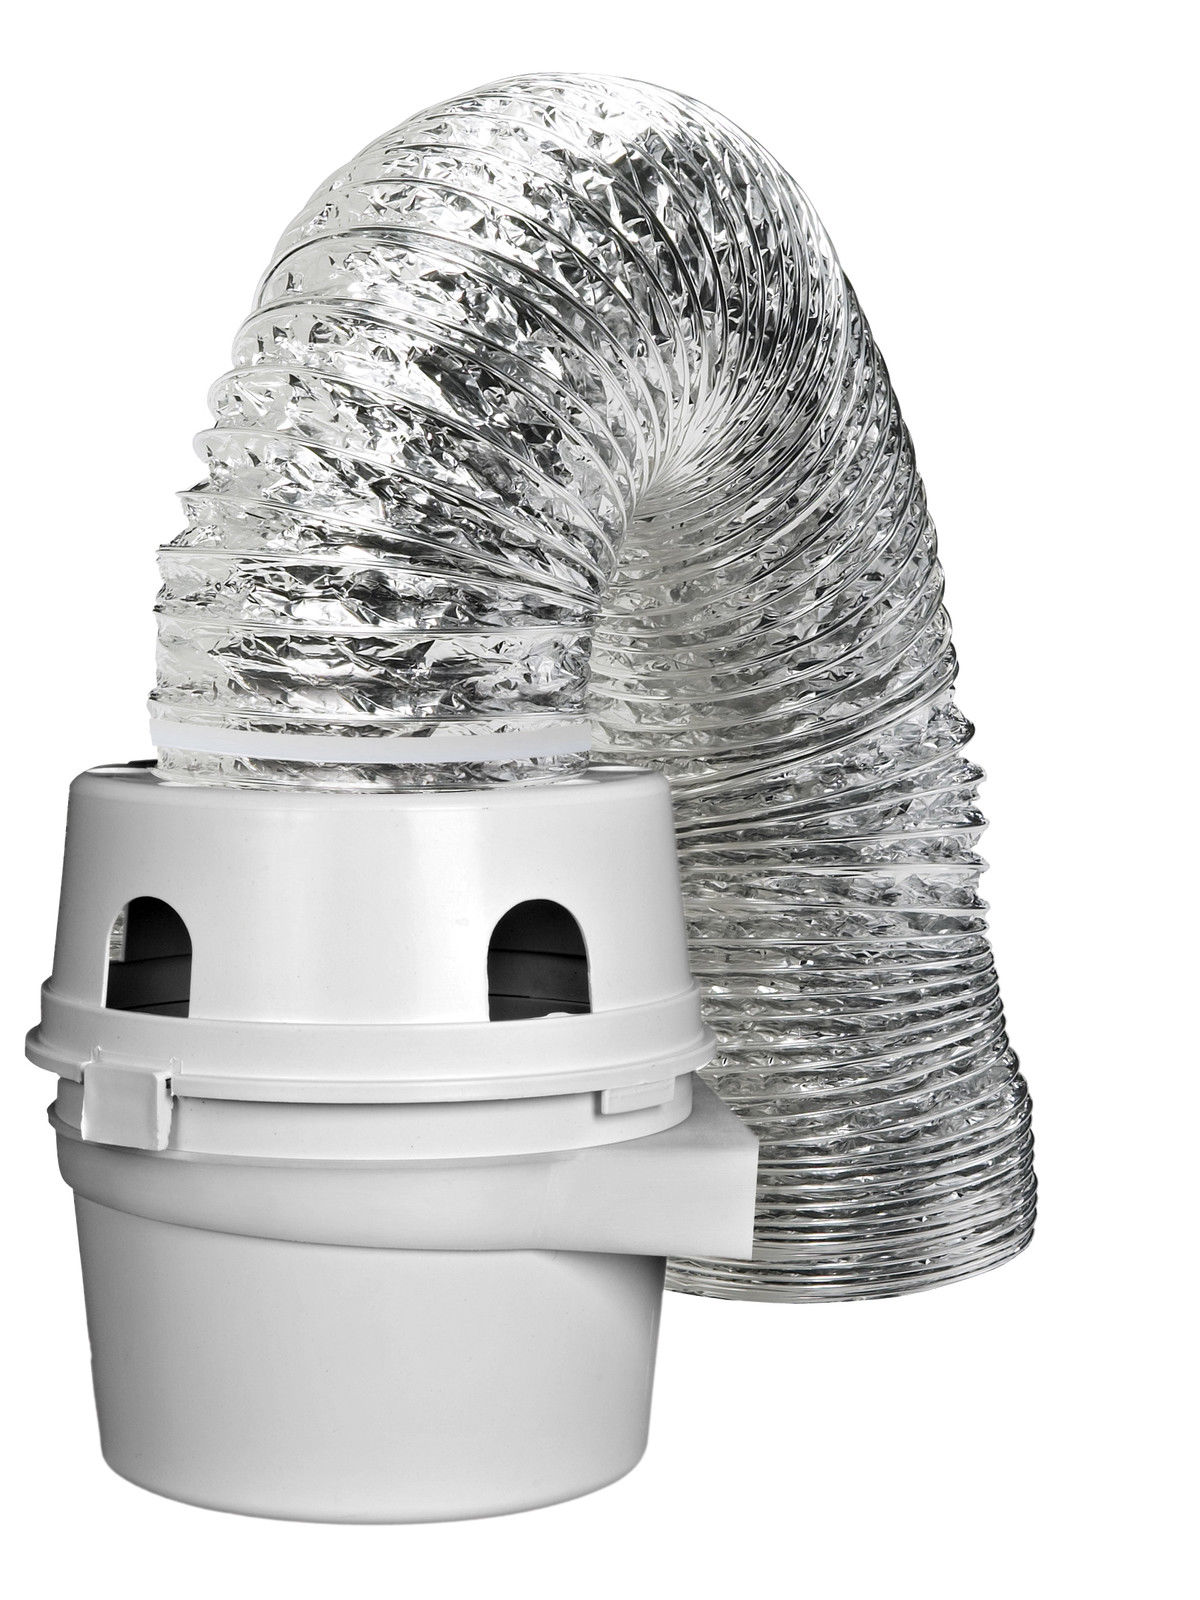 Tdidvkzw Dryer Indoor Vent Bucket Kit Aluminum Flex 4 Quot X 5